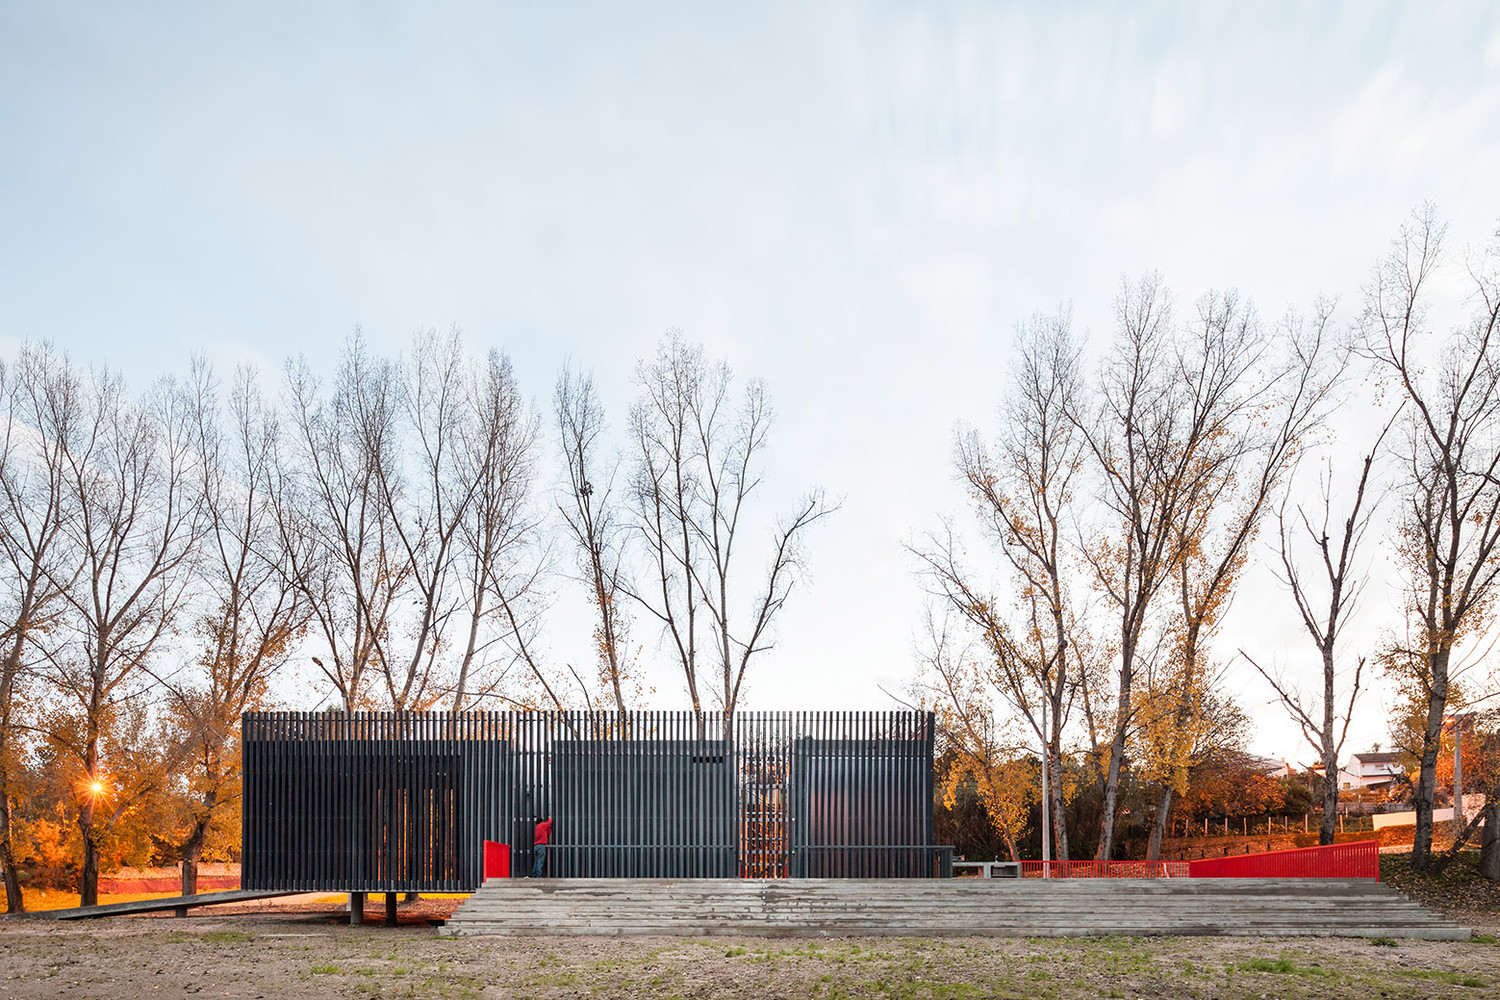 Alvega Canoeing Center / ateliermob